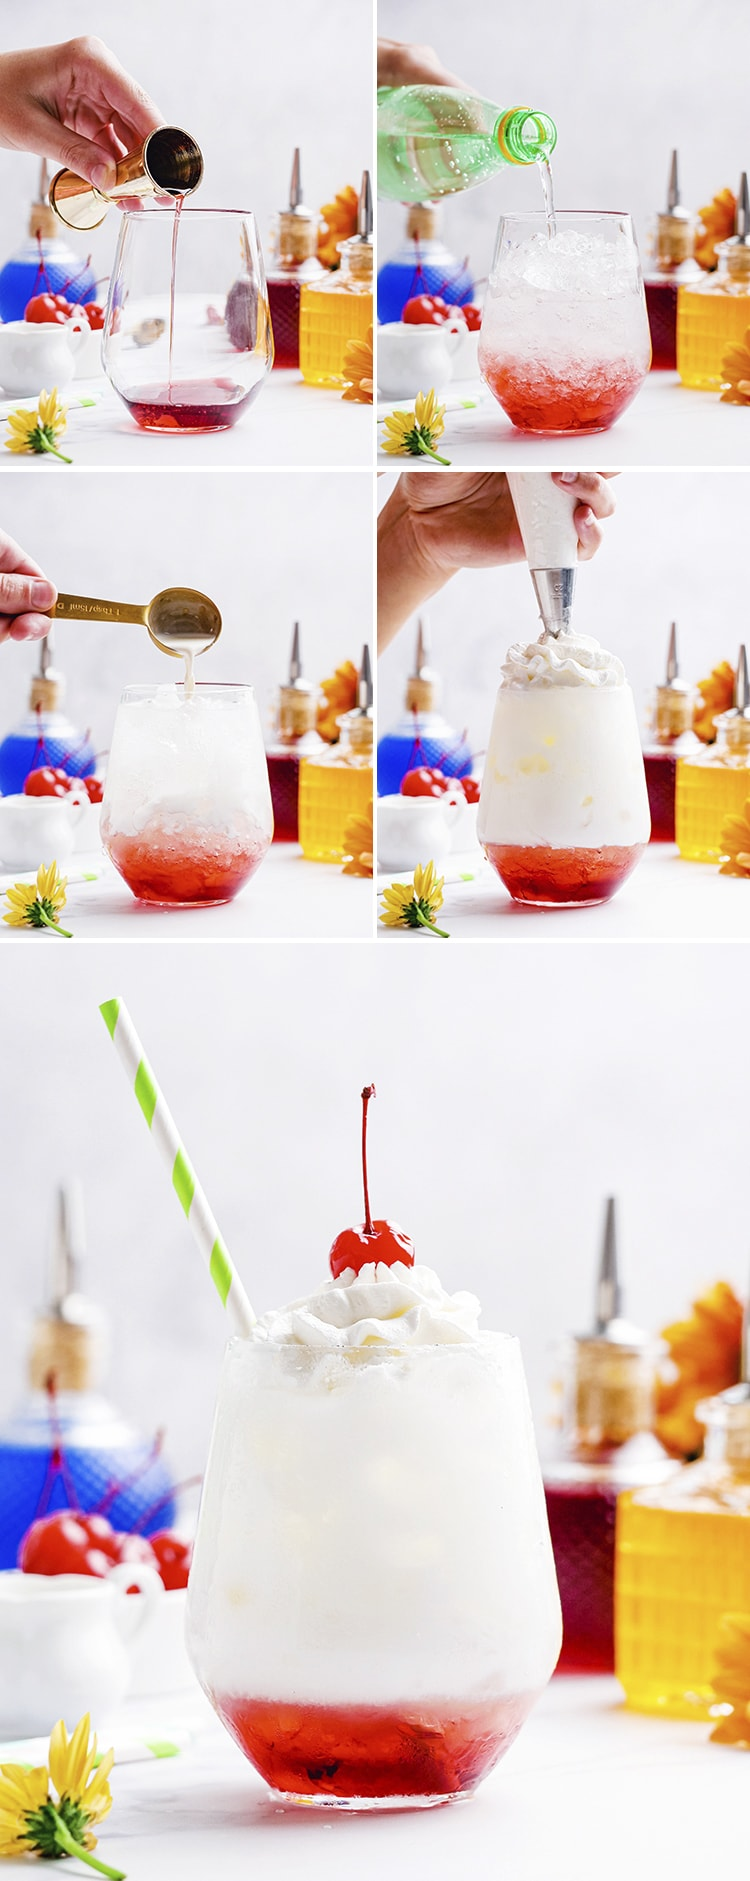 Step by step photos adding each of the four ingredients of Italian sodas. First adding a flavored red syrup, then adding club soda, then adding half and half then topping it with whipped cream. The final photo is a finished Italian soda with a maraschino cherry on top.